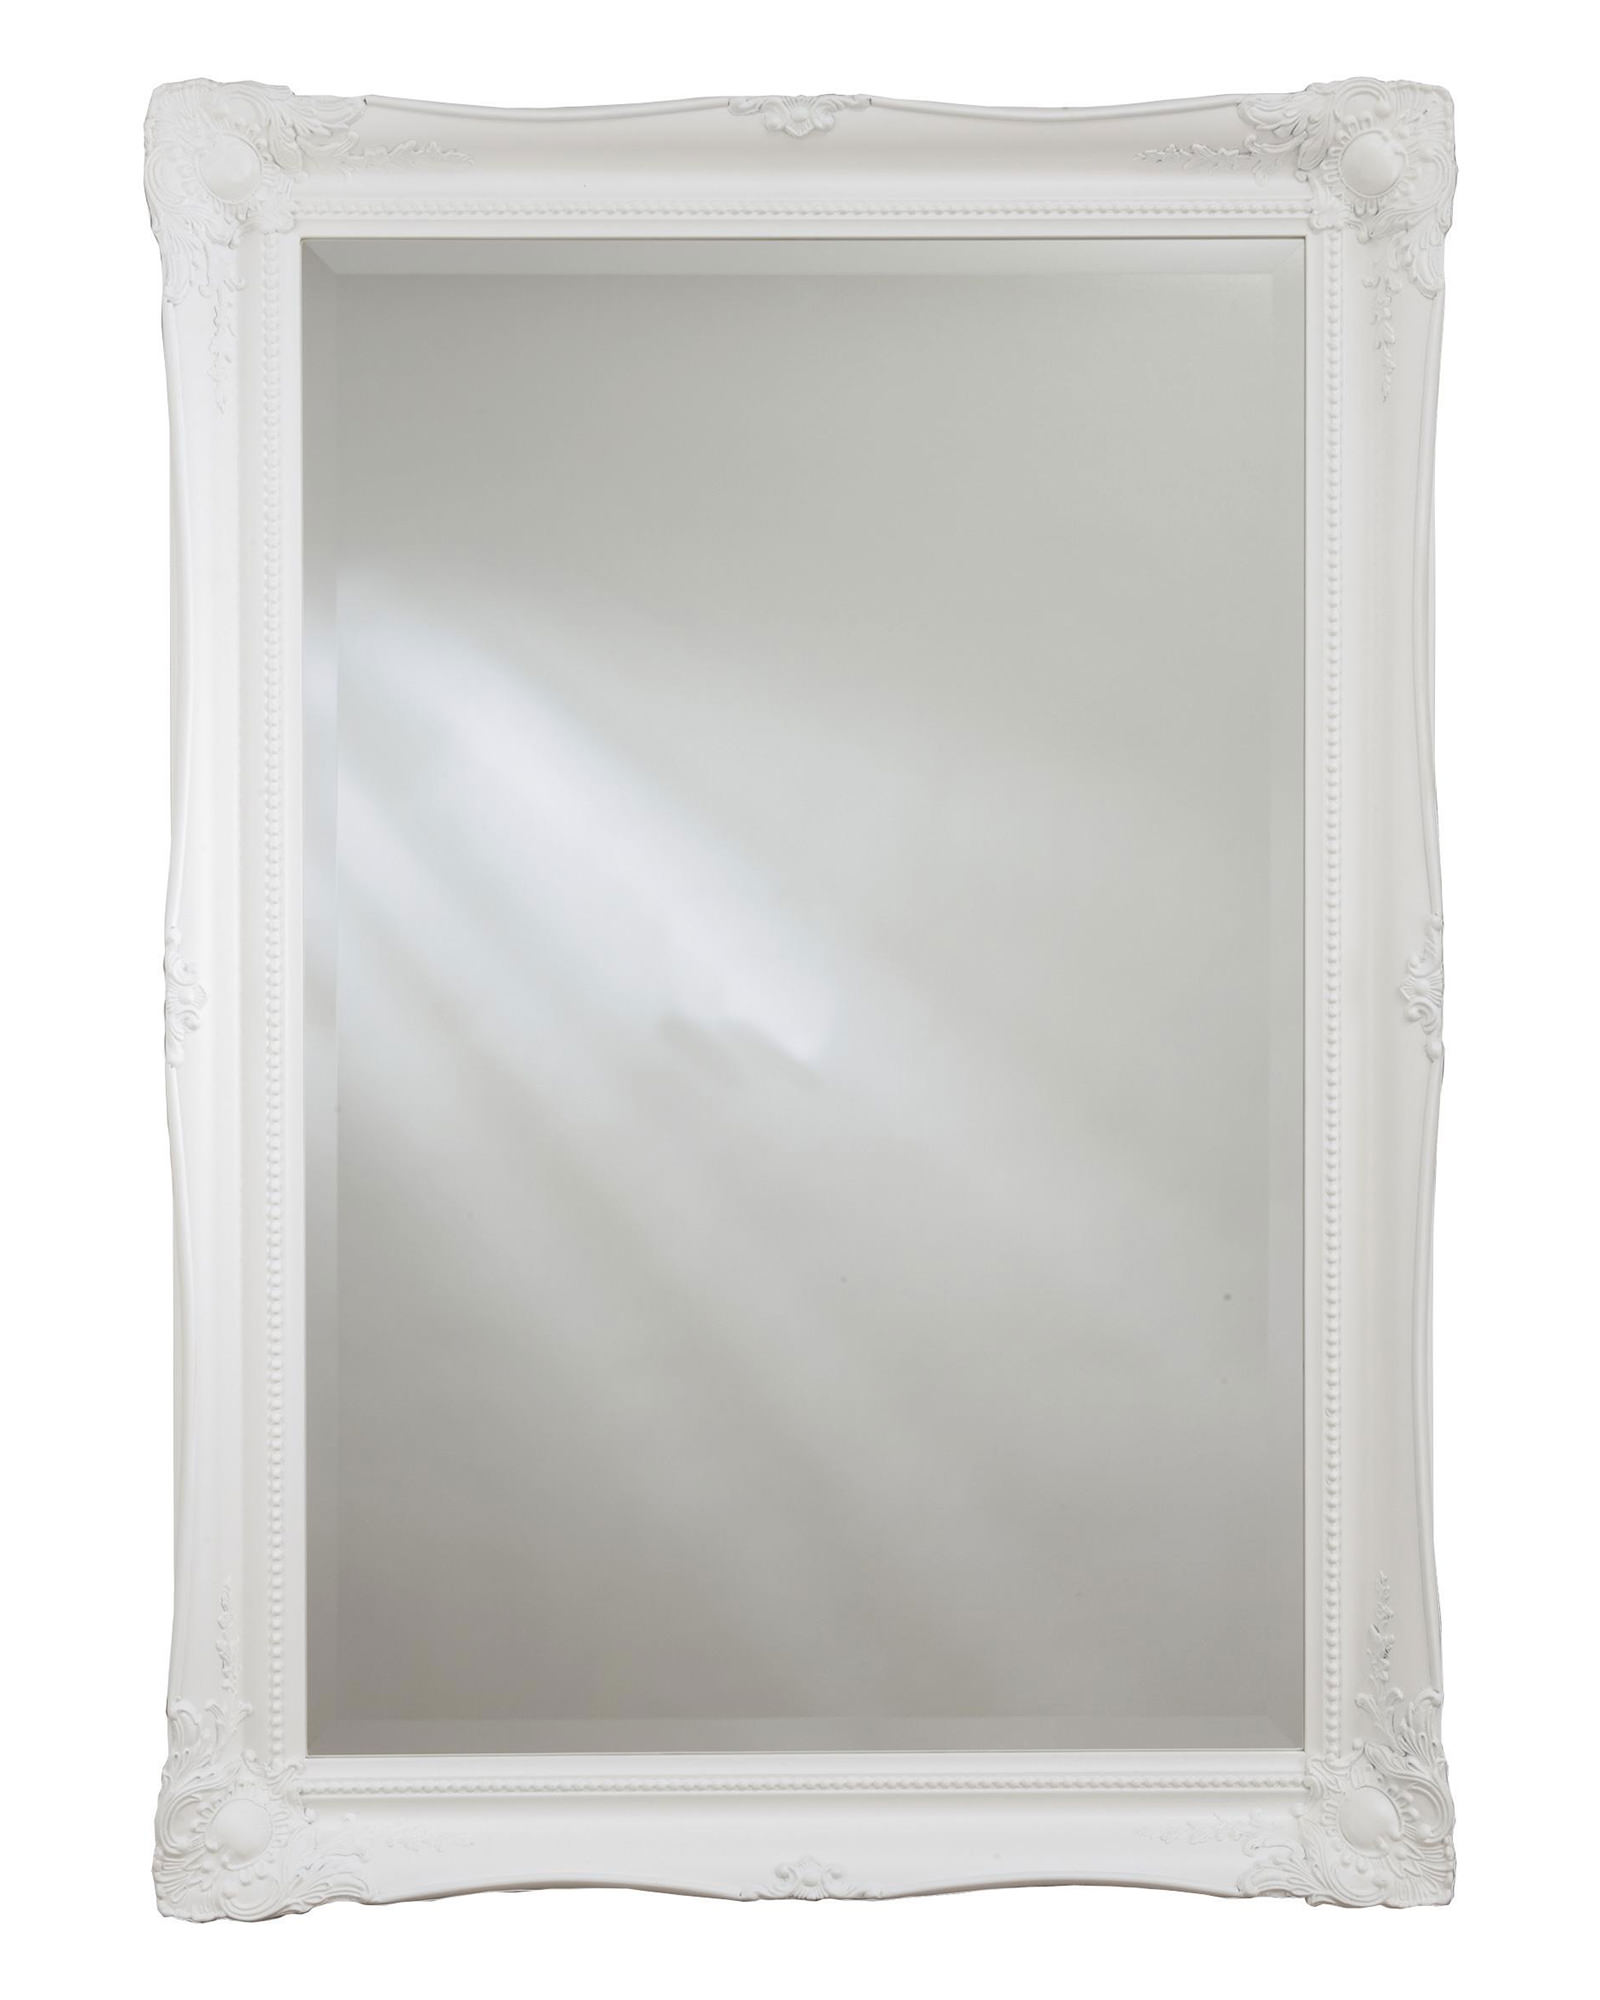 Heritage balham white wooden framed mirror 660 x 910mm for White framed mirror